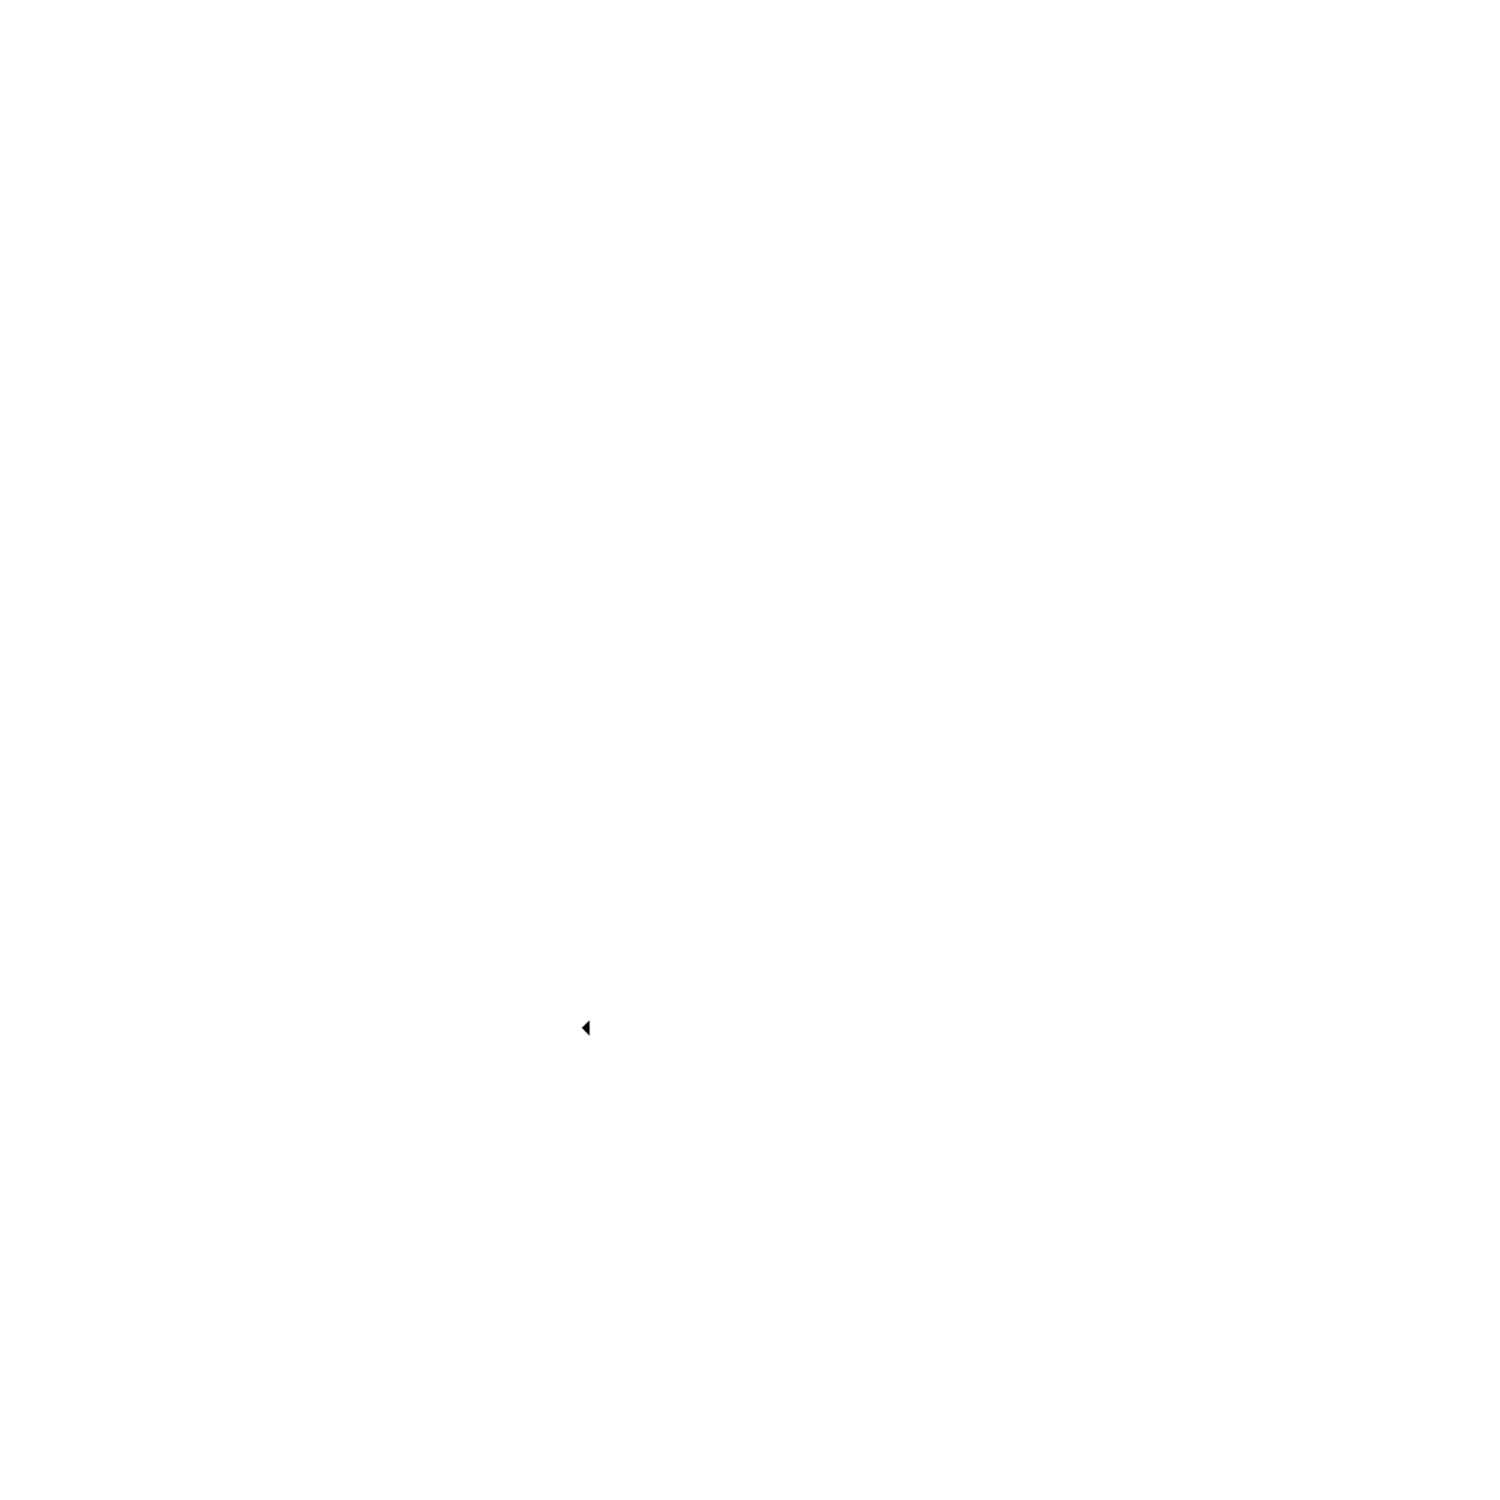 Services funding for sex trafficking victims in short supply new mexico dream center biocorpaavc